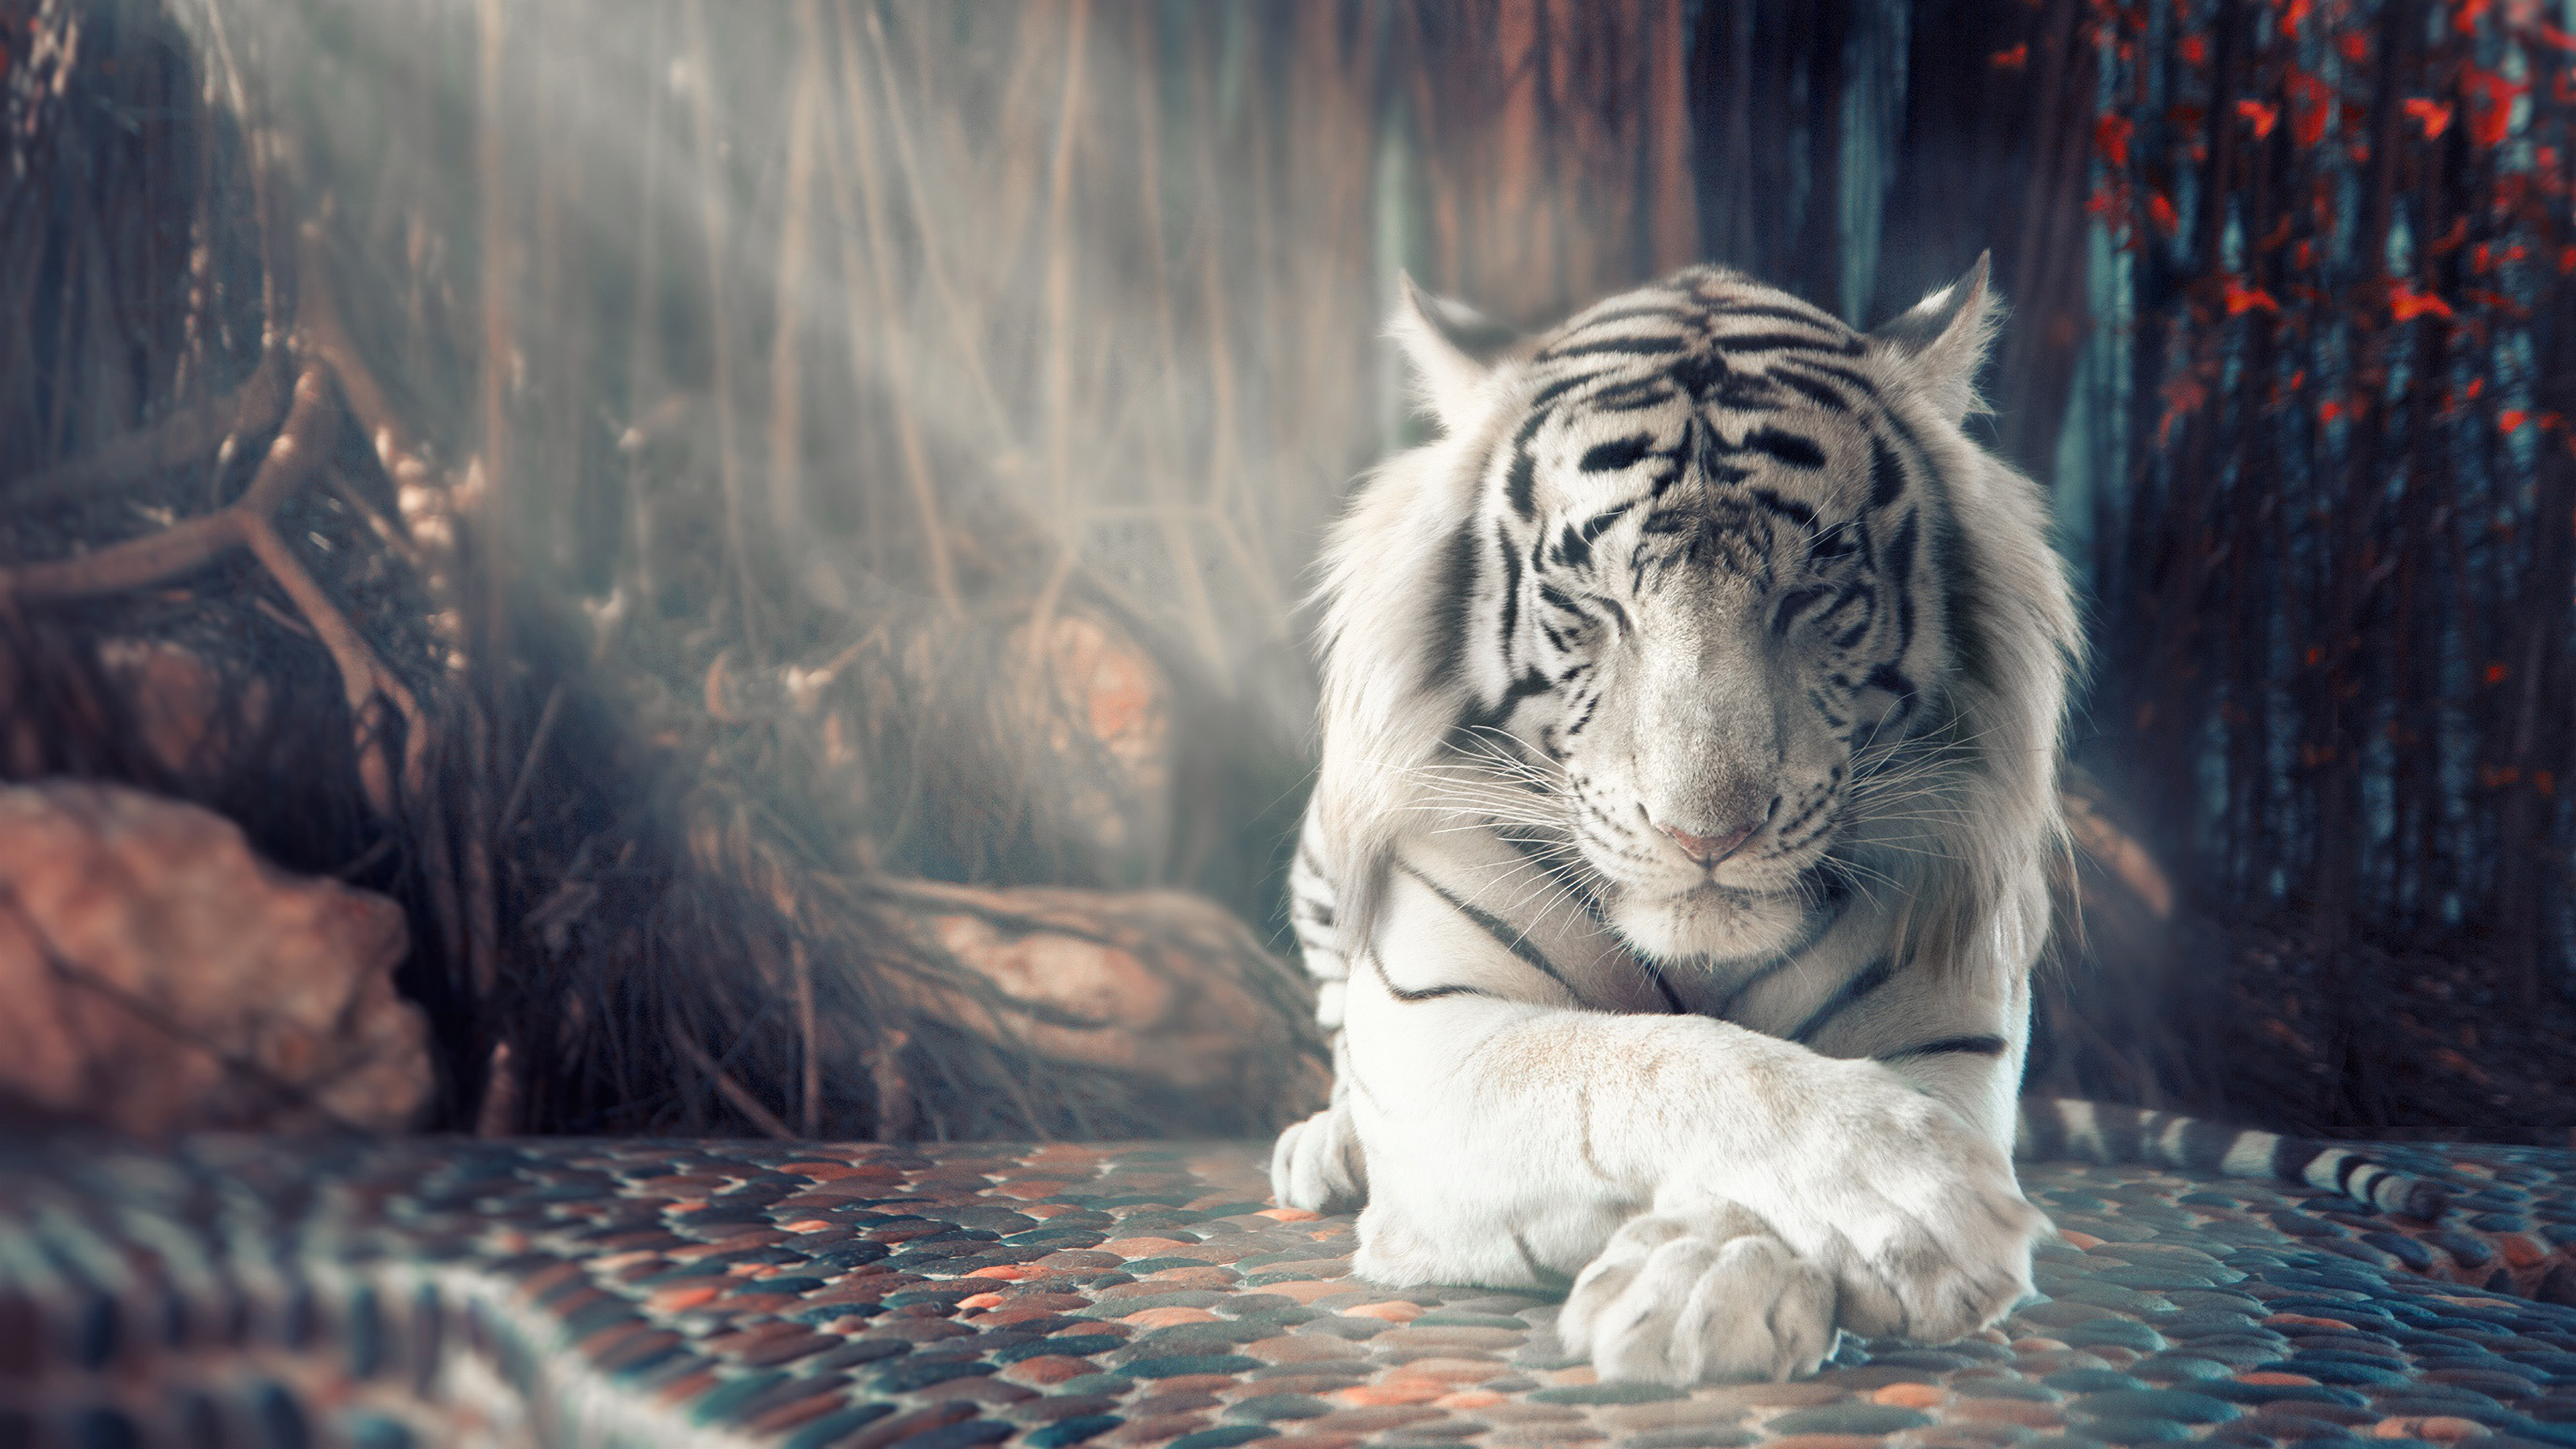 White Tiger Sleeping 4k Wallpaper 4 568